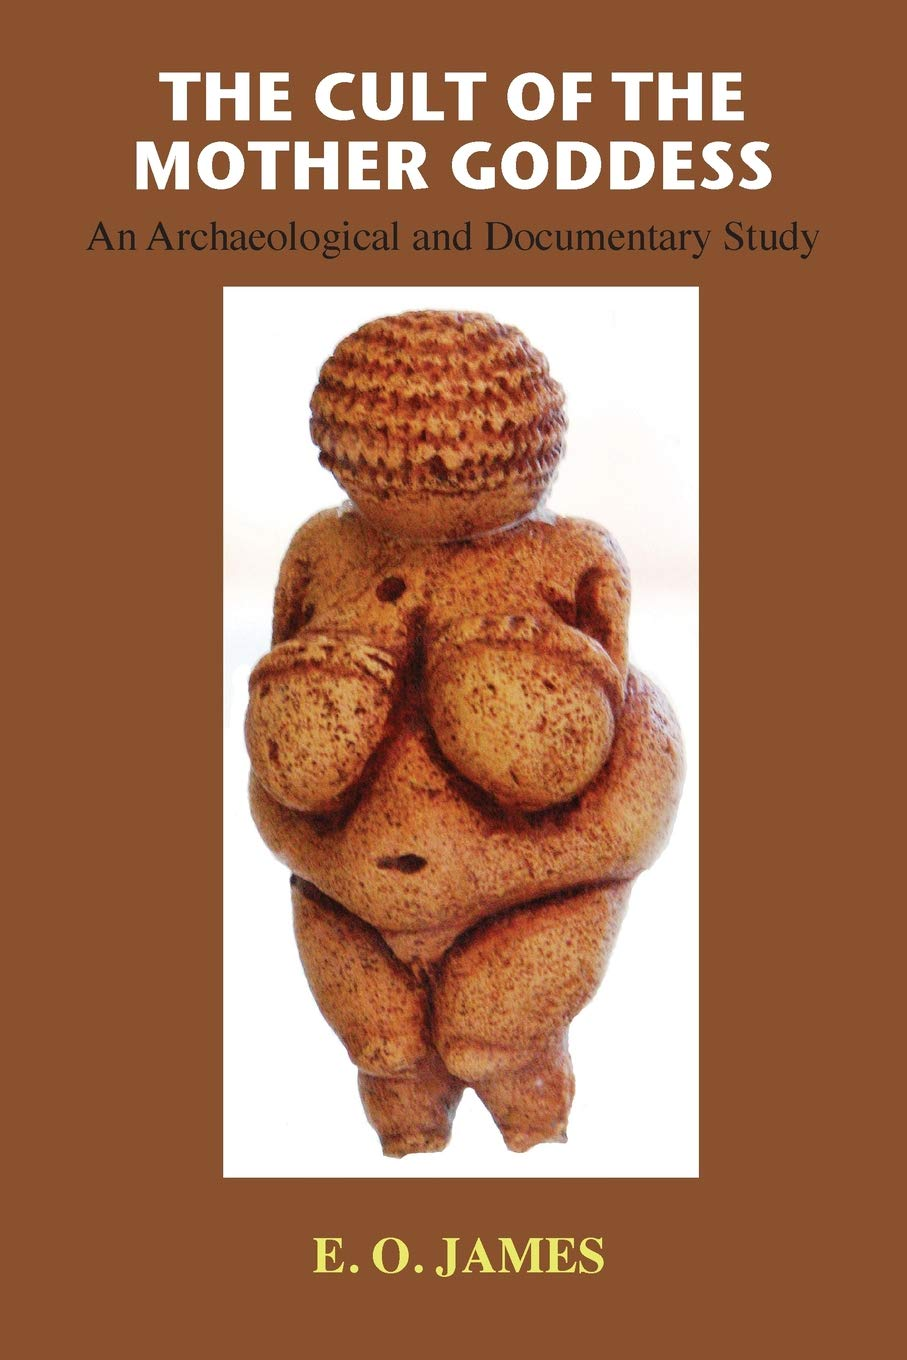 The Cult of the Mother Goddess: An Archaeological and Documentary Study